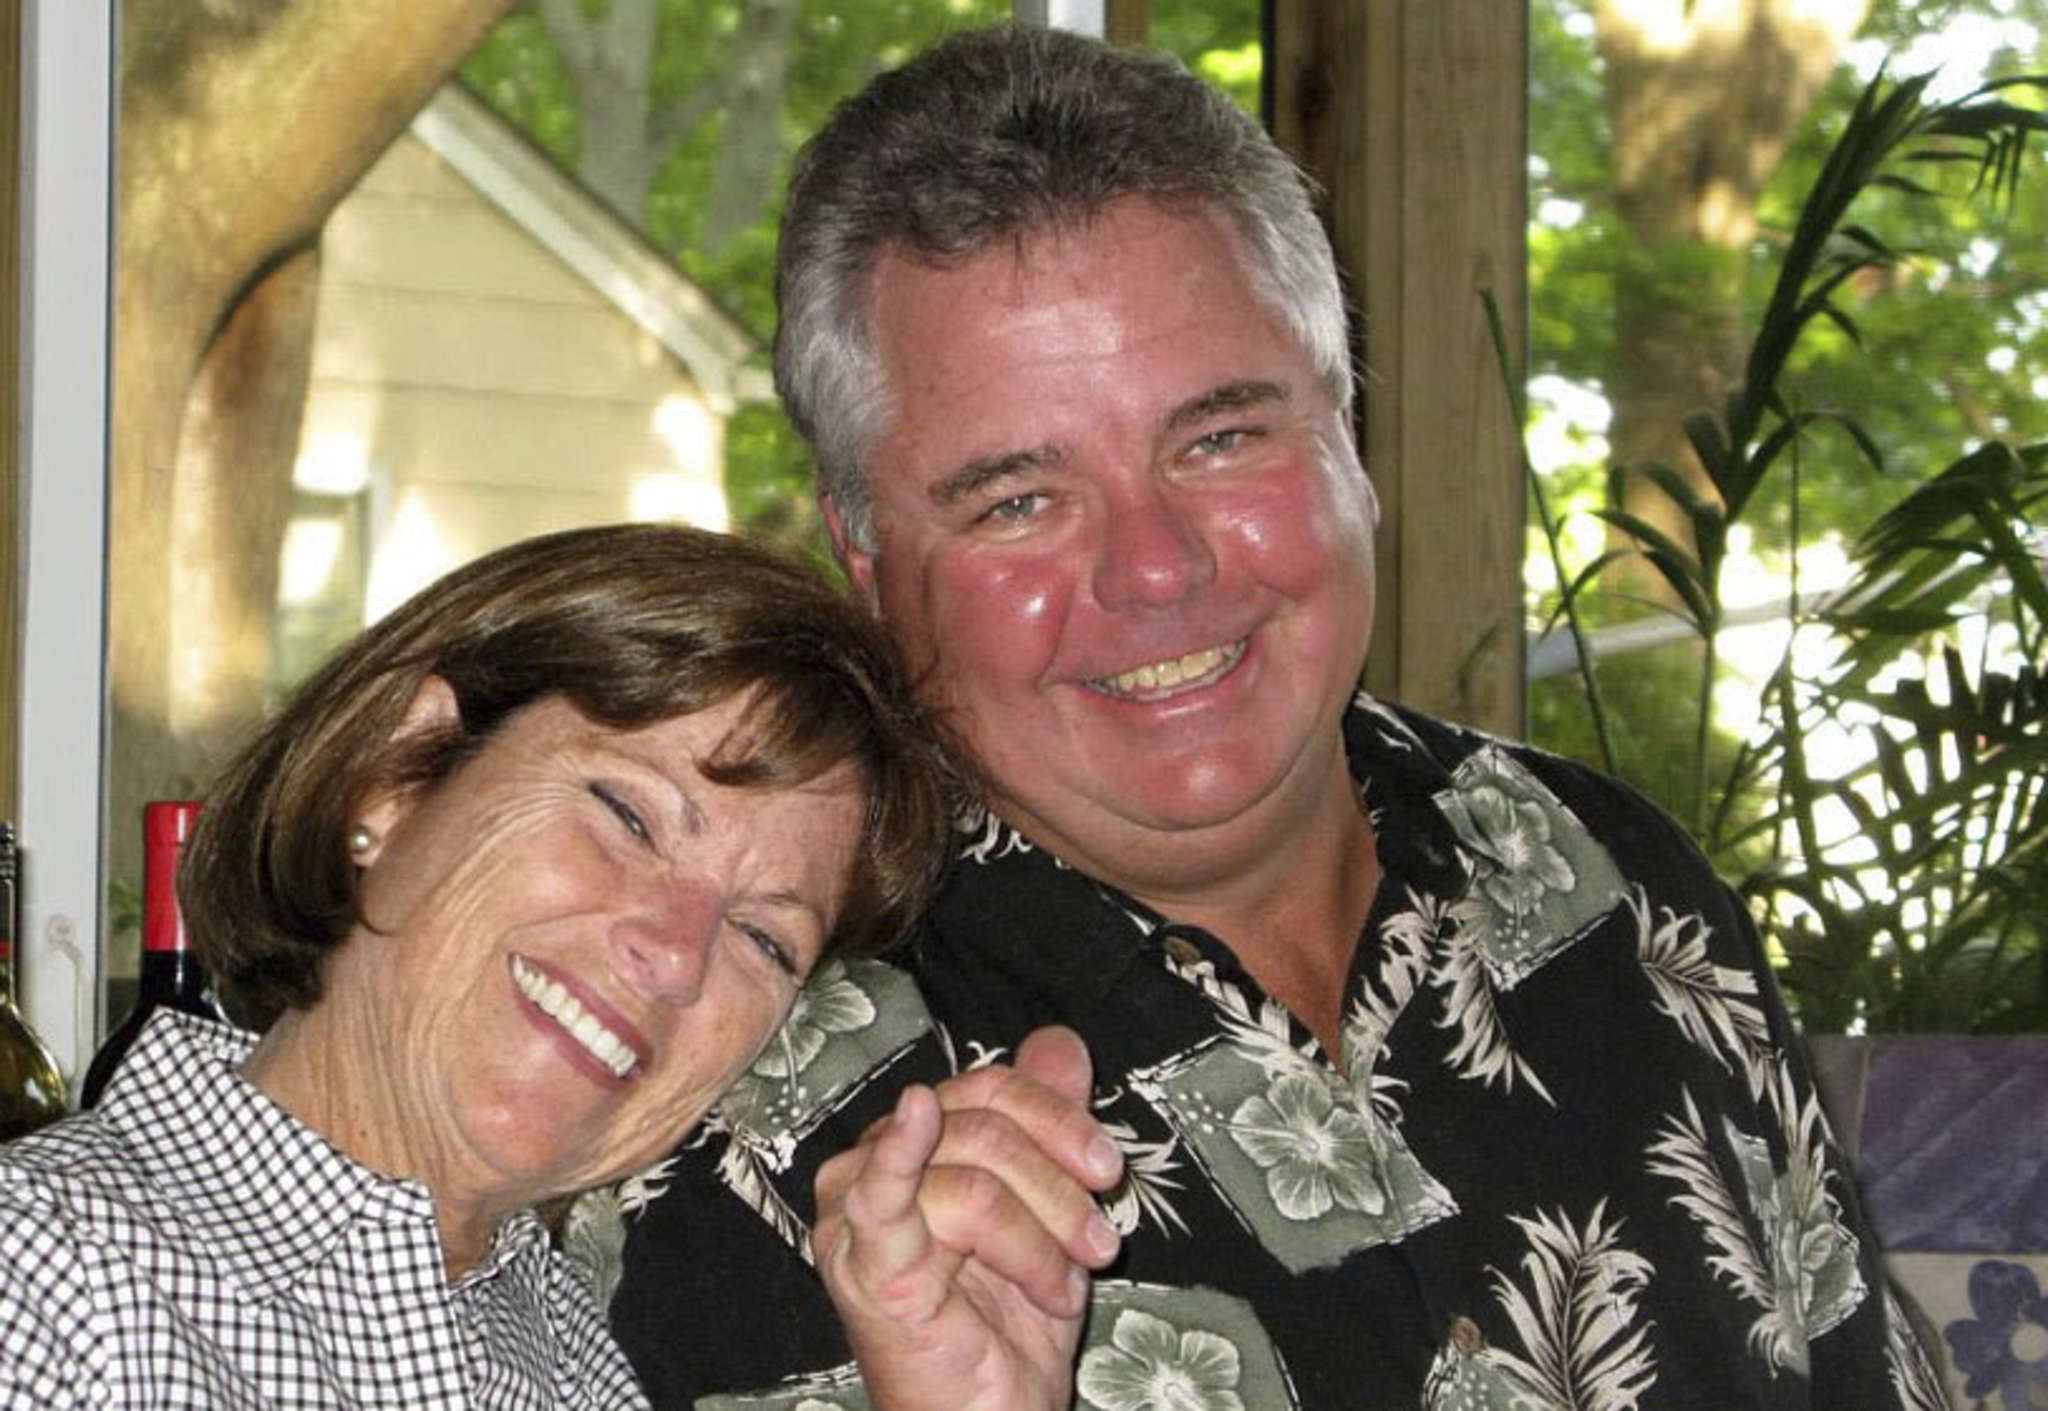 Ann Andres and husband, Terry , of Virginia Beach. Terry Andres was reported killed in the airport shooting Friday.